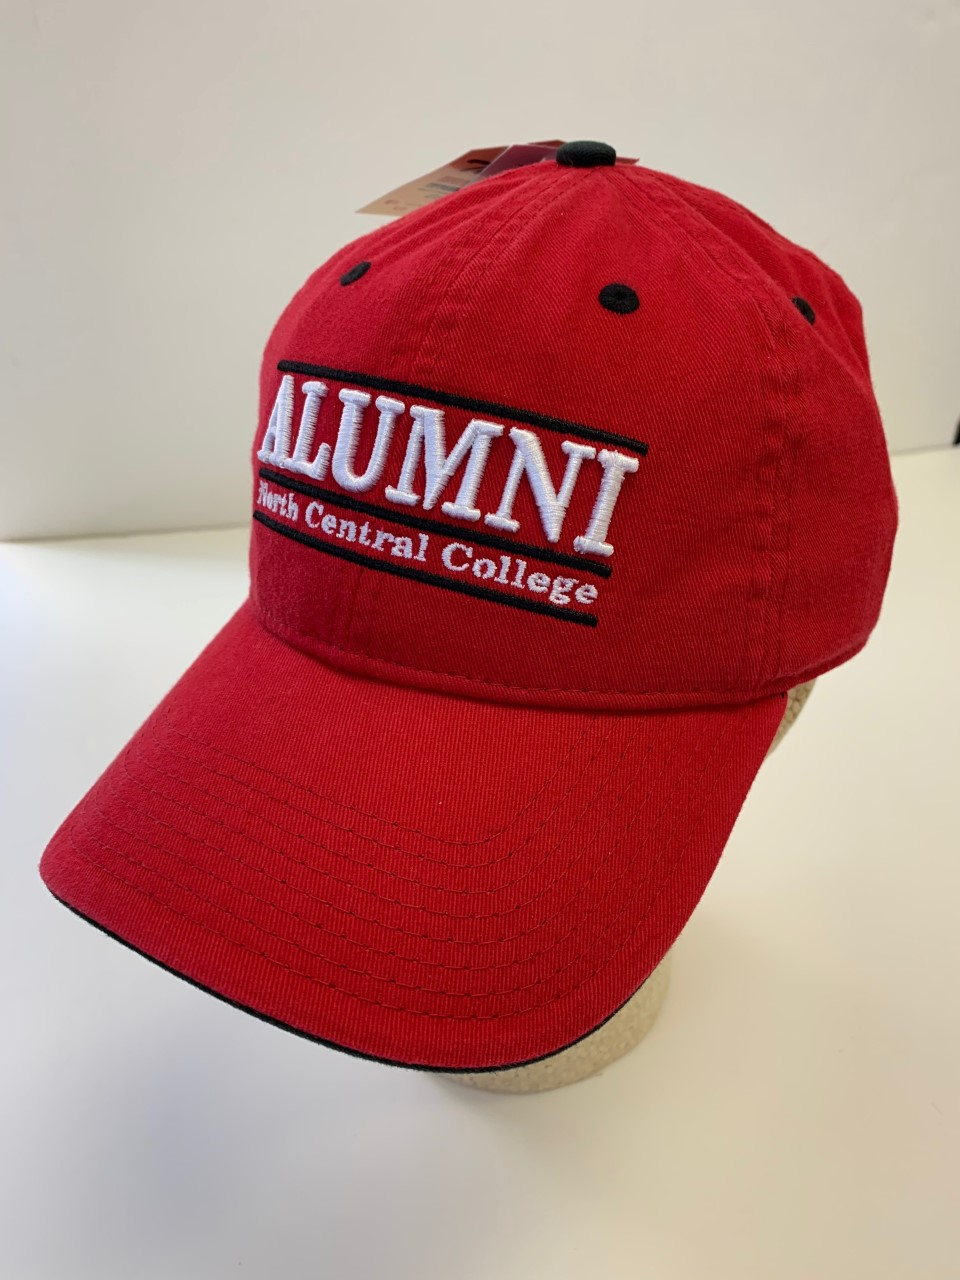 Image for the The Game Alumni Hat product